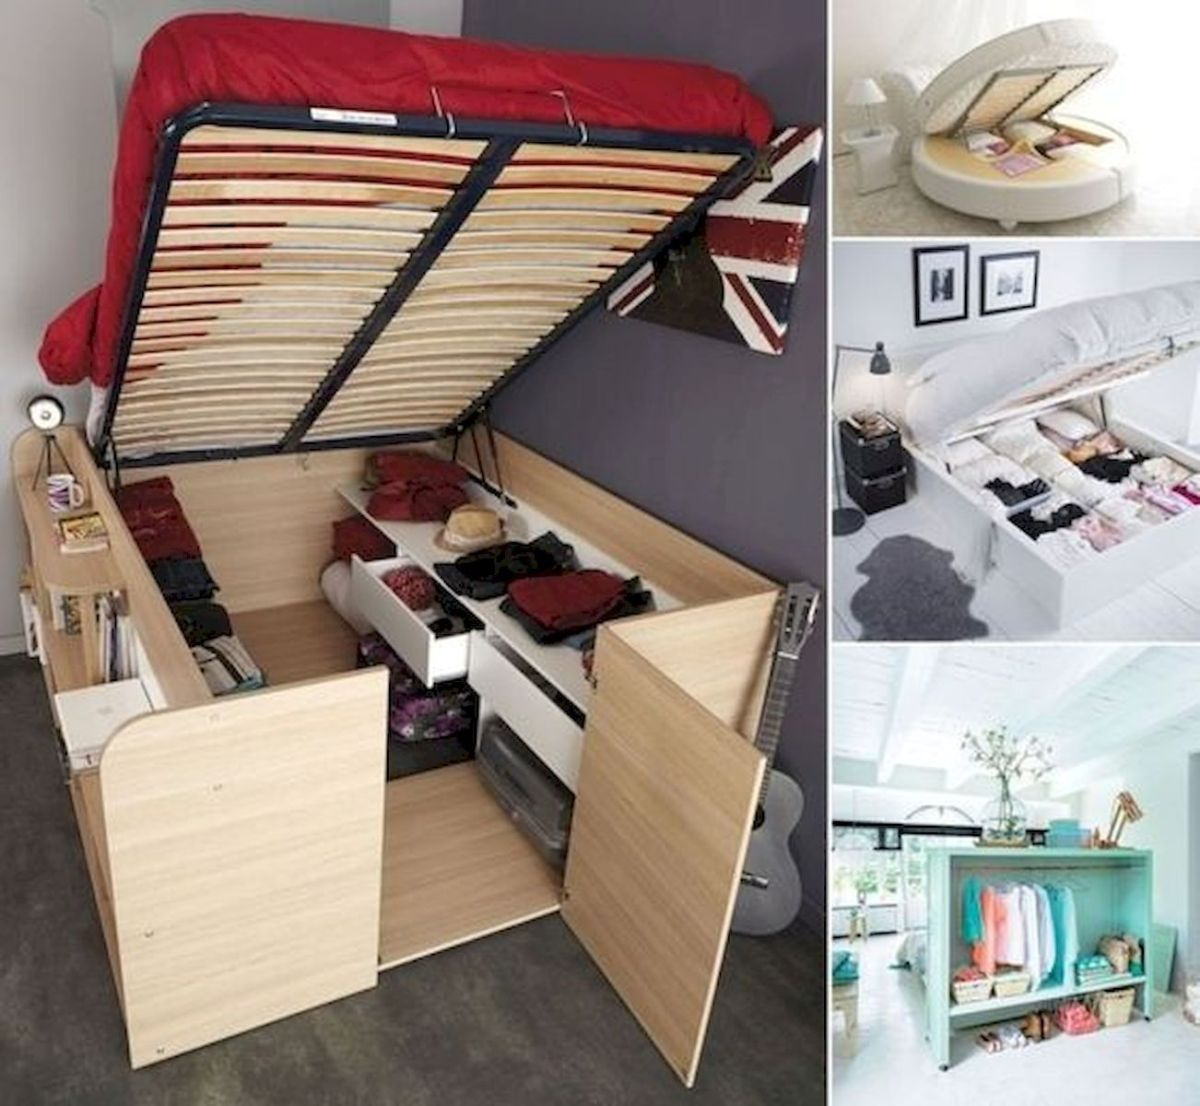 60 Easy And Brilliant Diy Storage Ideas For Small Bedroom 51 Small Bedroom Diy Small Bedroom Tiny House Storage